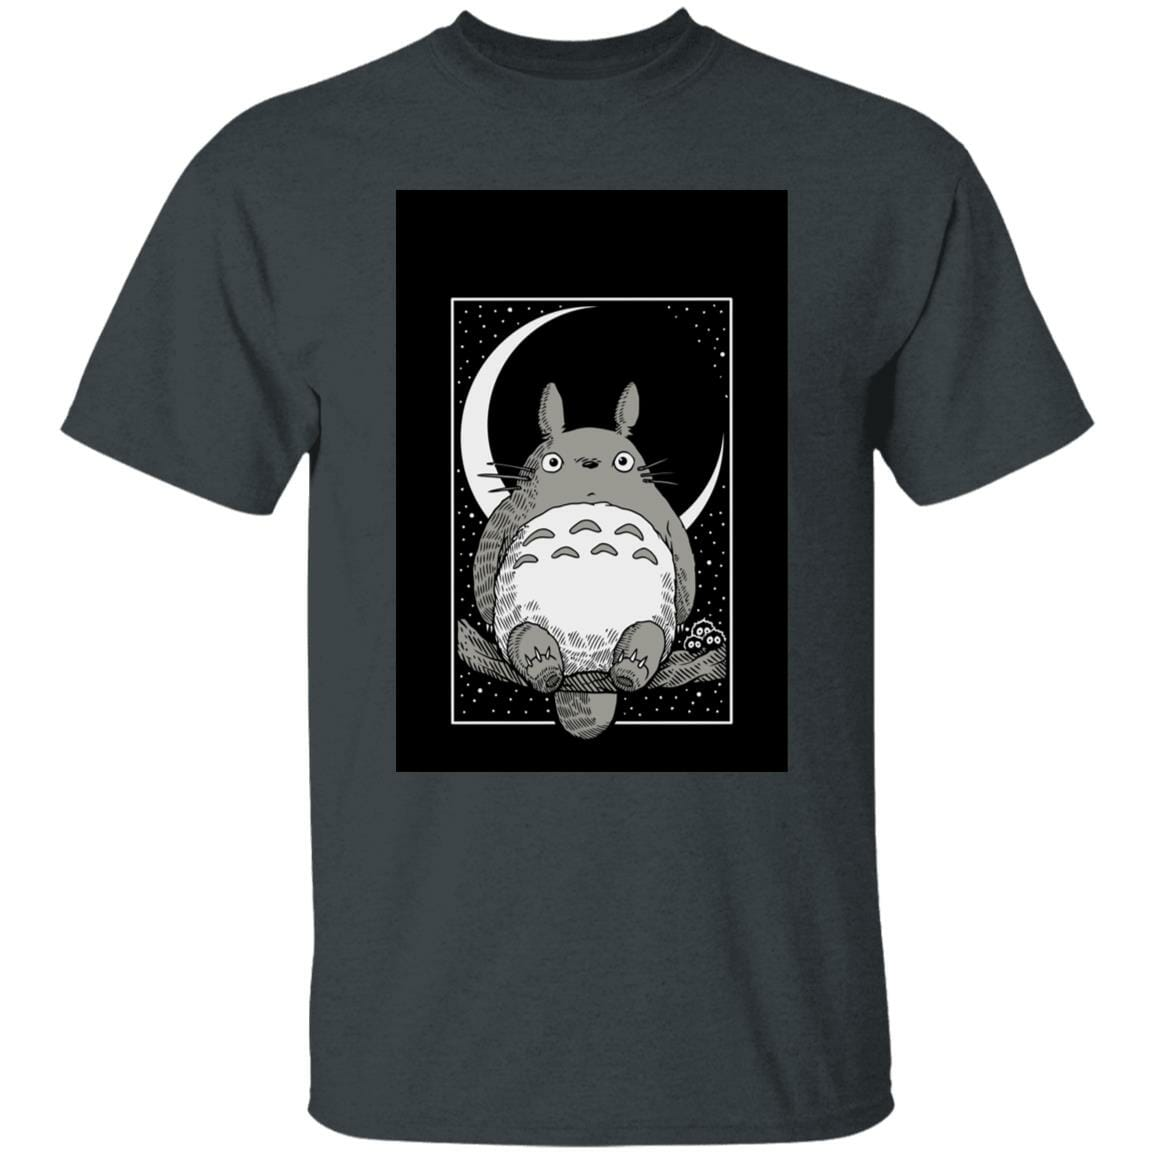 My Neighbor Totoro by the Moon Black & White T Shirt Unisex